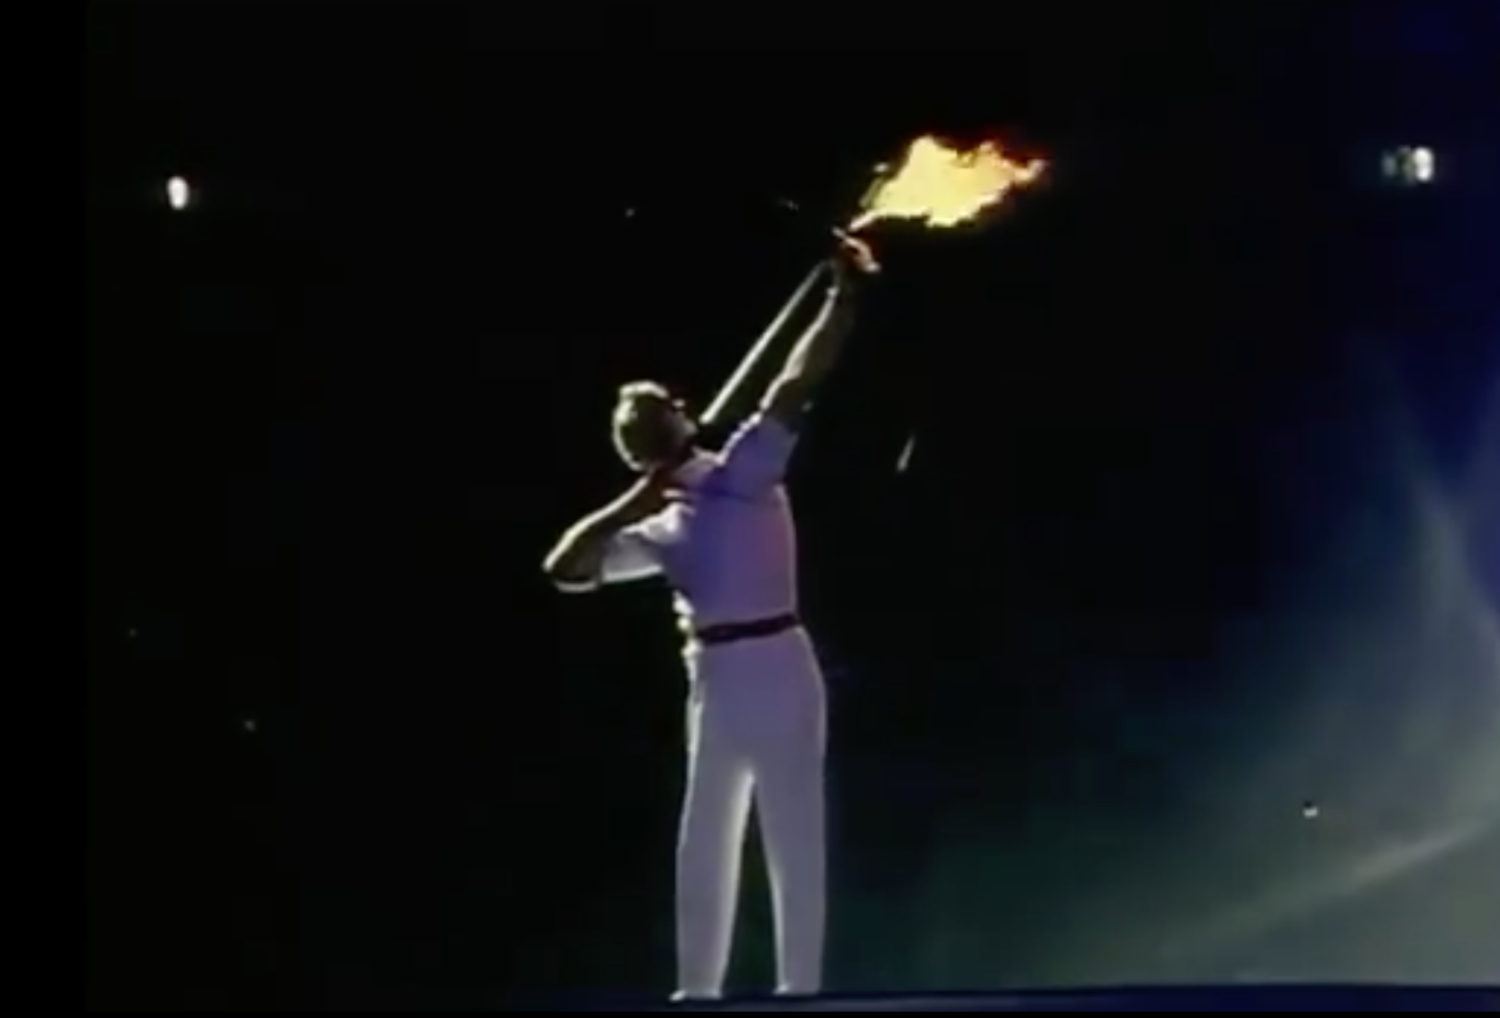 A Quarter-Century On:  Barcelona Olympic Games Open With the Shot of an Easton Arrow